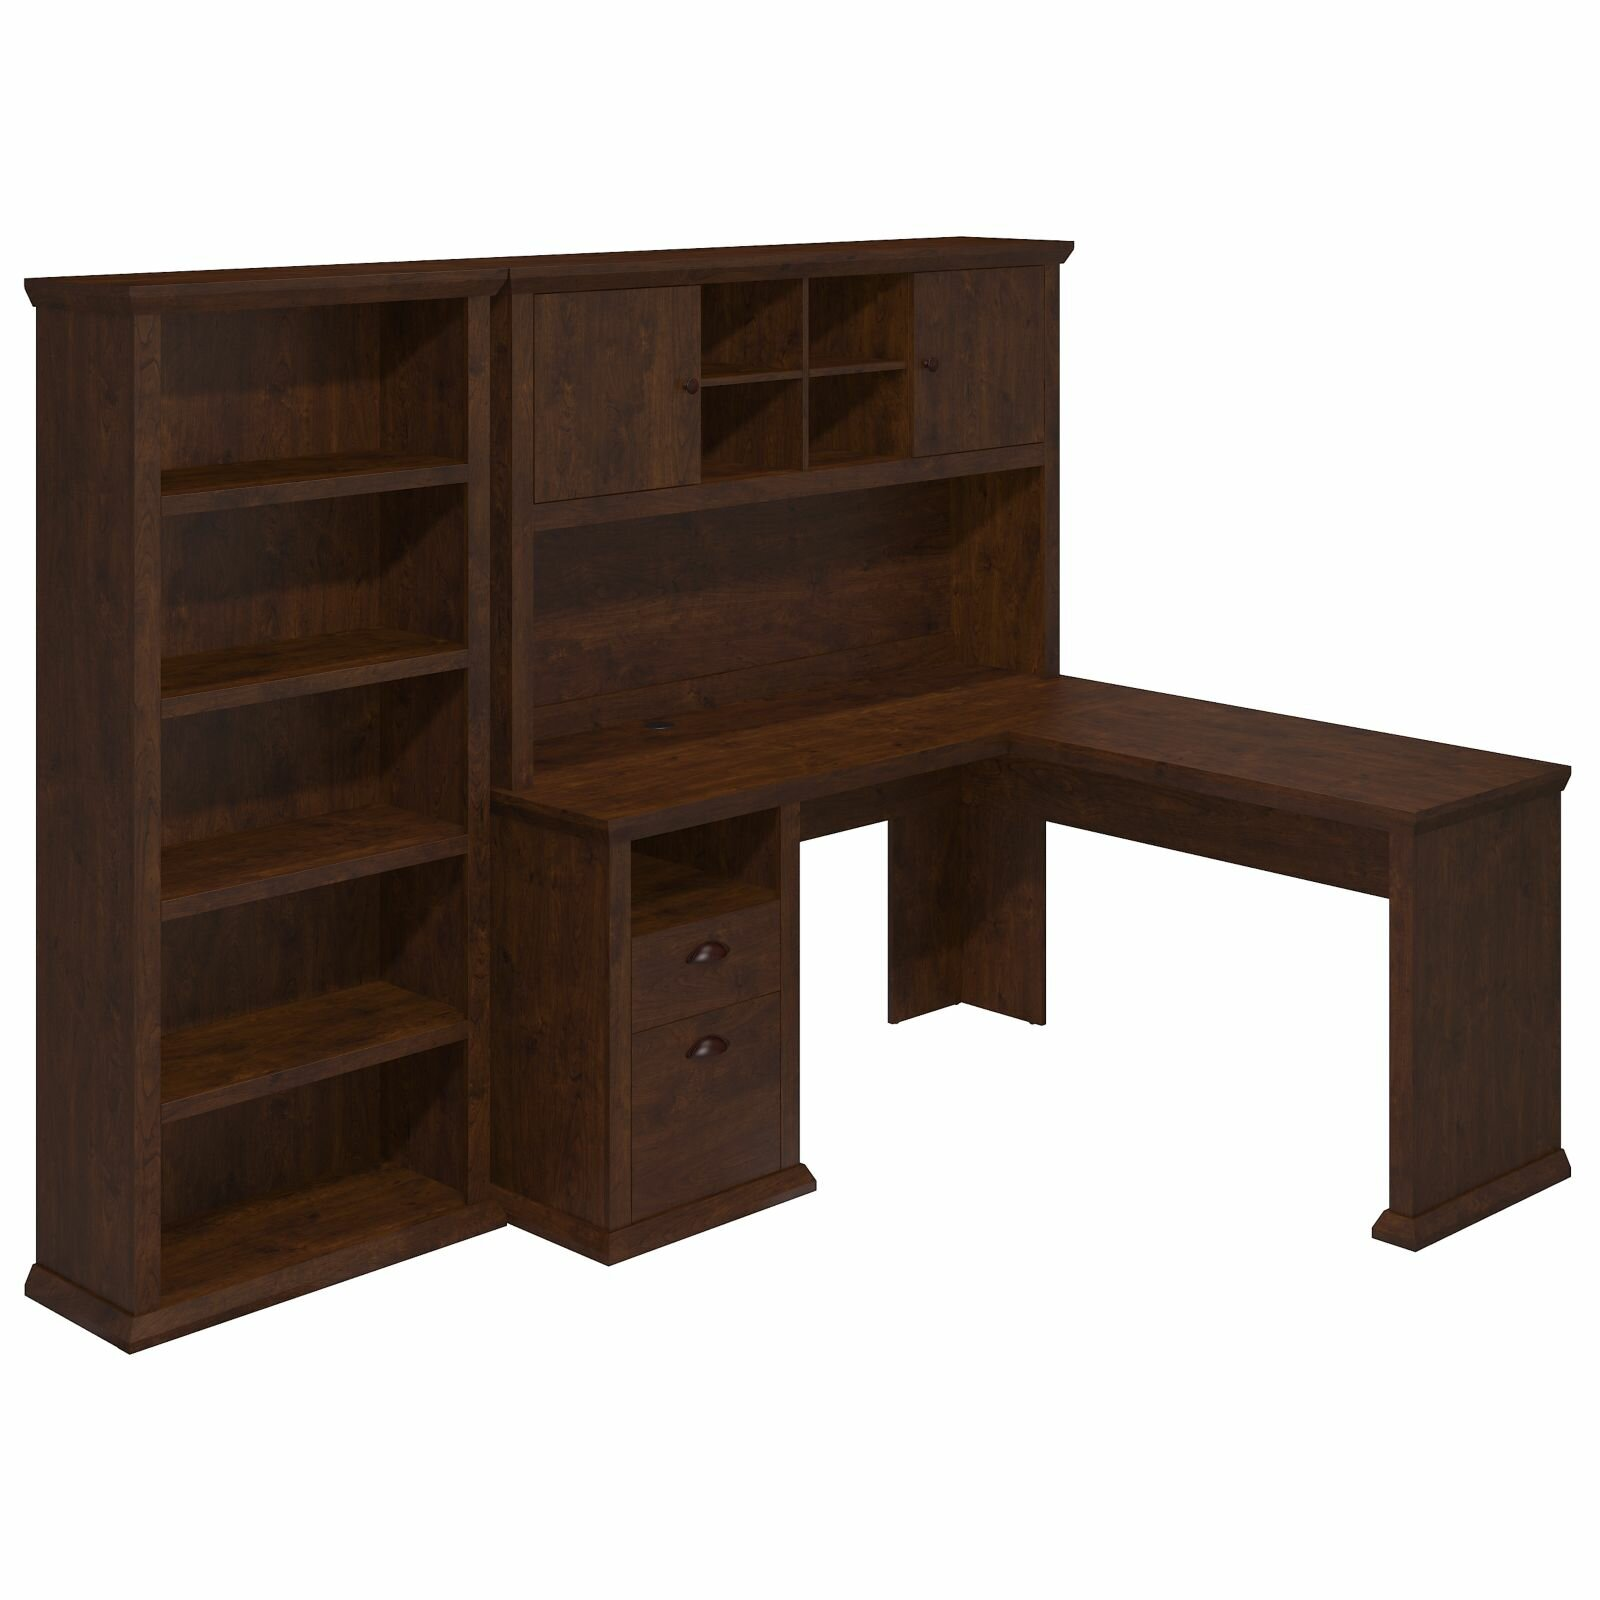 Yorktown Corner Desk With Hutch And Bookcase & Reviews Wayfair. Full resolution‎  image, nominally Width 1600 Height 1600 pixels, image with #372218.